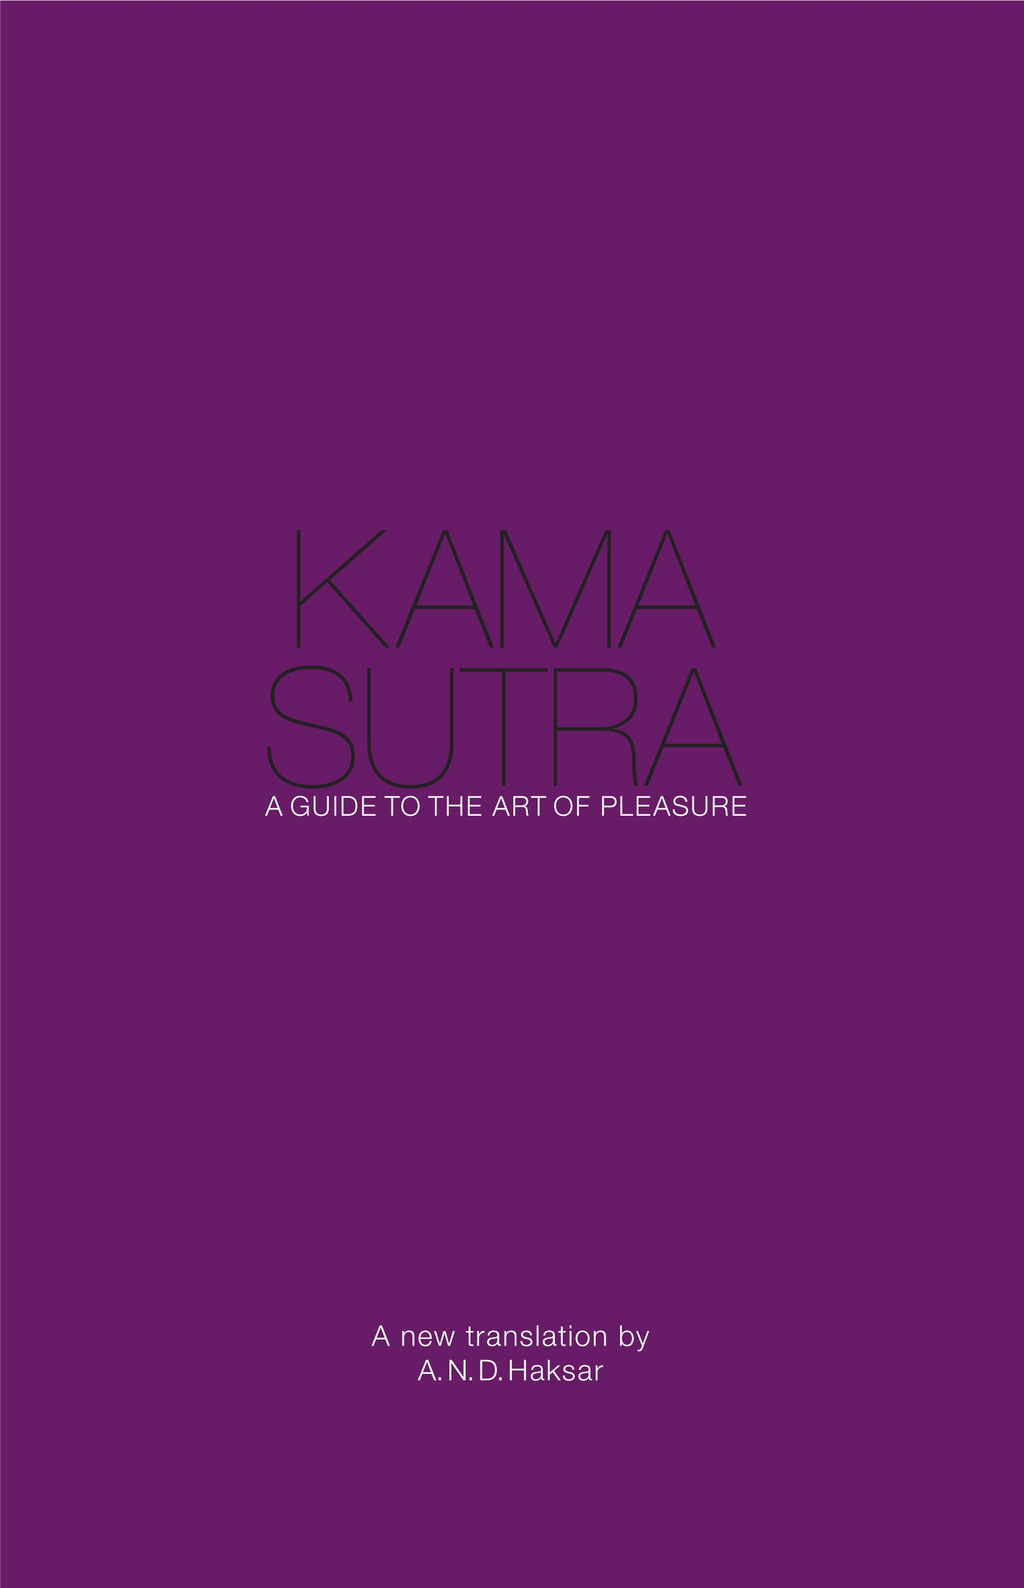 Kama Sutra A Guide to the Art of Pleasure